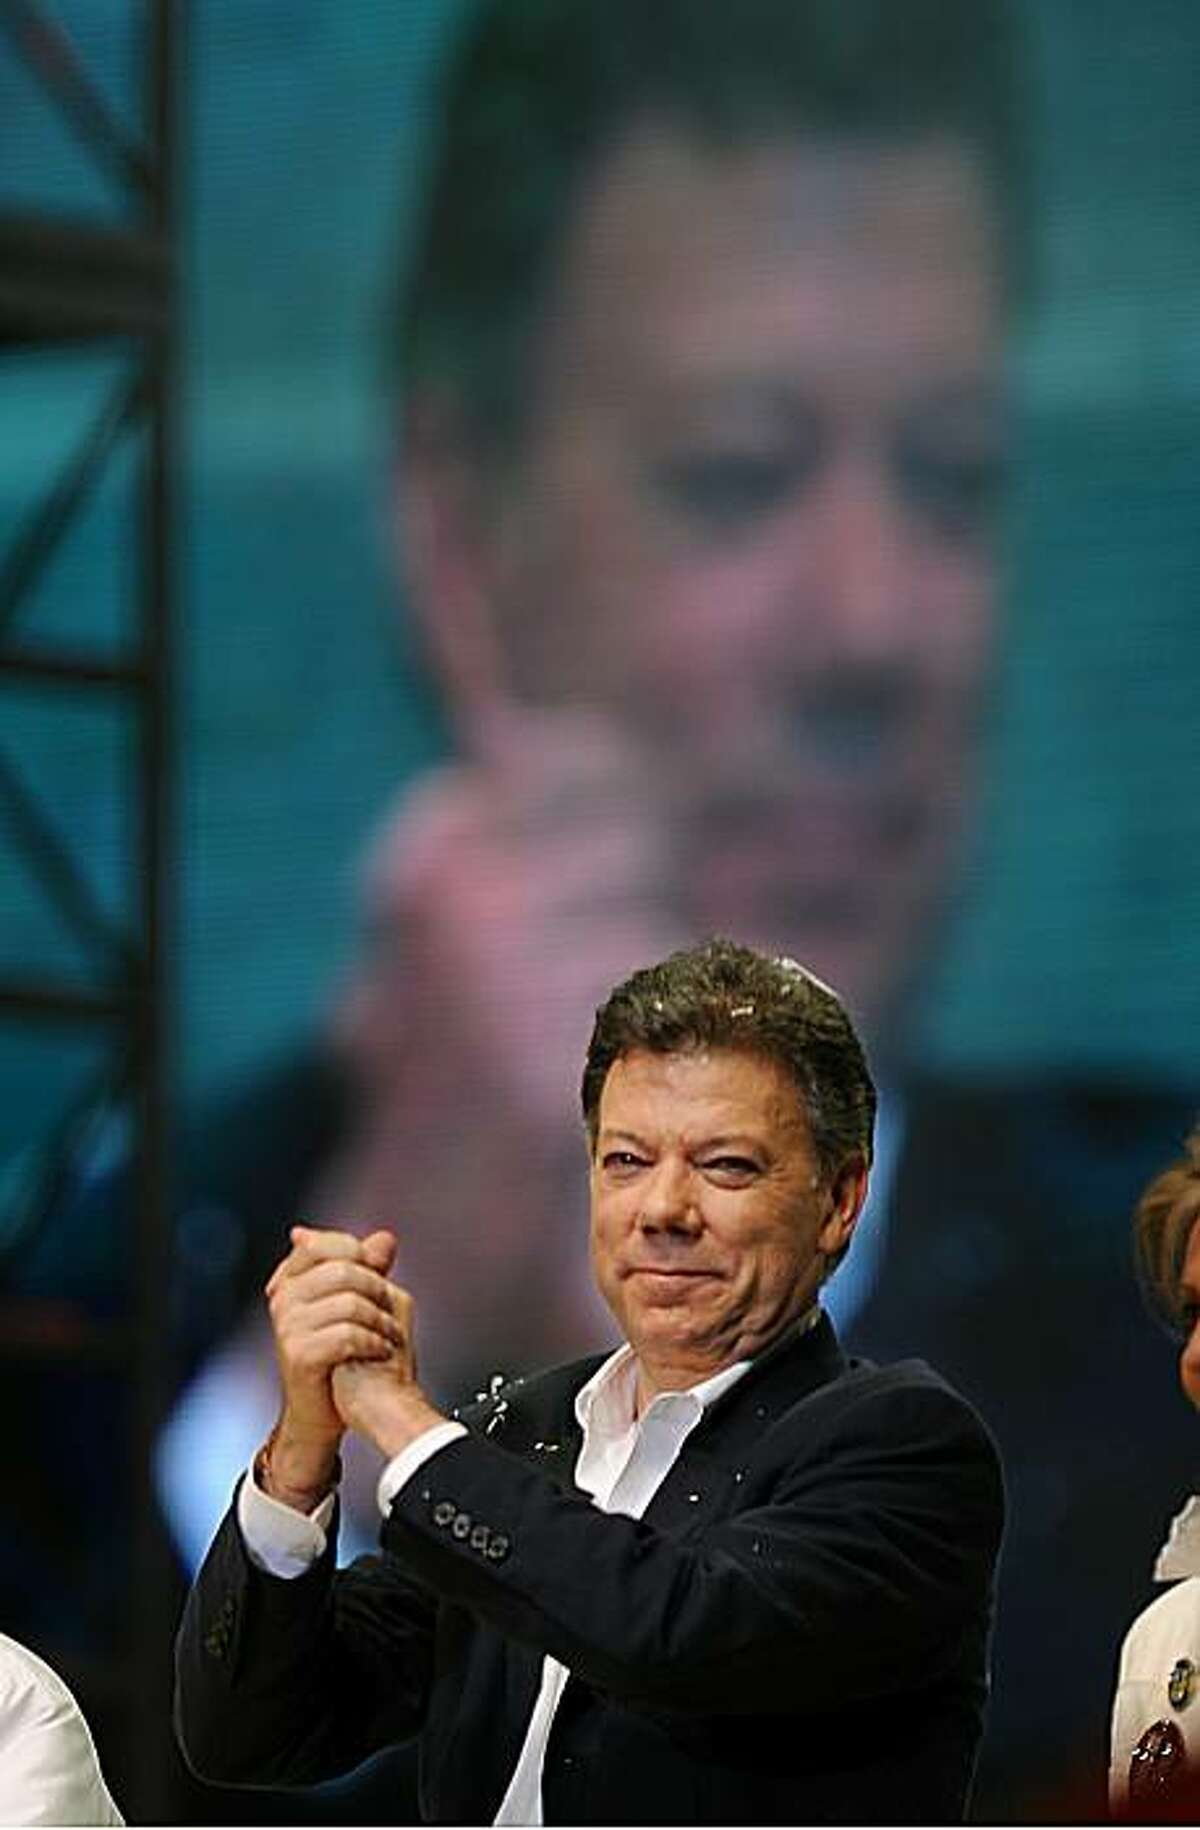 Colombian President elect Juan Manuel Santos gestures as he delivers a speech in Bogota on June 20, 2010, after the presidential election run-off. Conservative former Defense Minister Juan Manuel Santos won Colombia's presidential run-off vote Sunday taking 69.2 percent of the poll with 53.9 percent of votes counted, the National Electoral Board said. Santos, who will succeed popular two-term President Alvaro Uribe, defeated Green Party rival Antanas Mockus, a former Bogota Mayor who drew 27.4 percent ofthe vote, the board added.